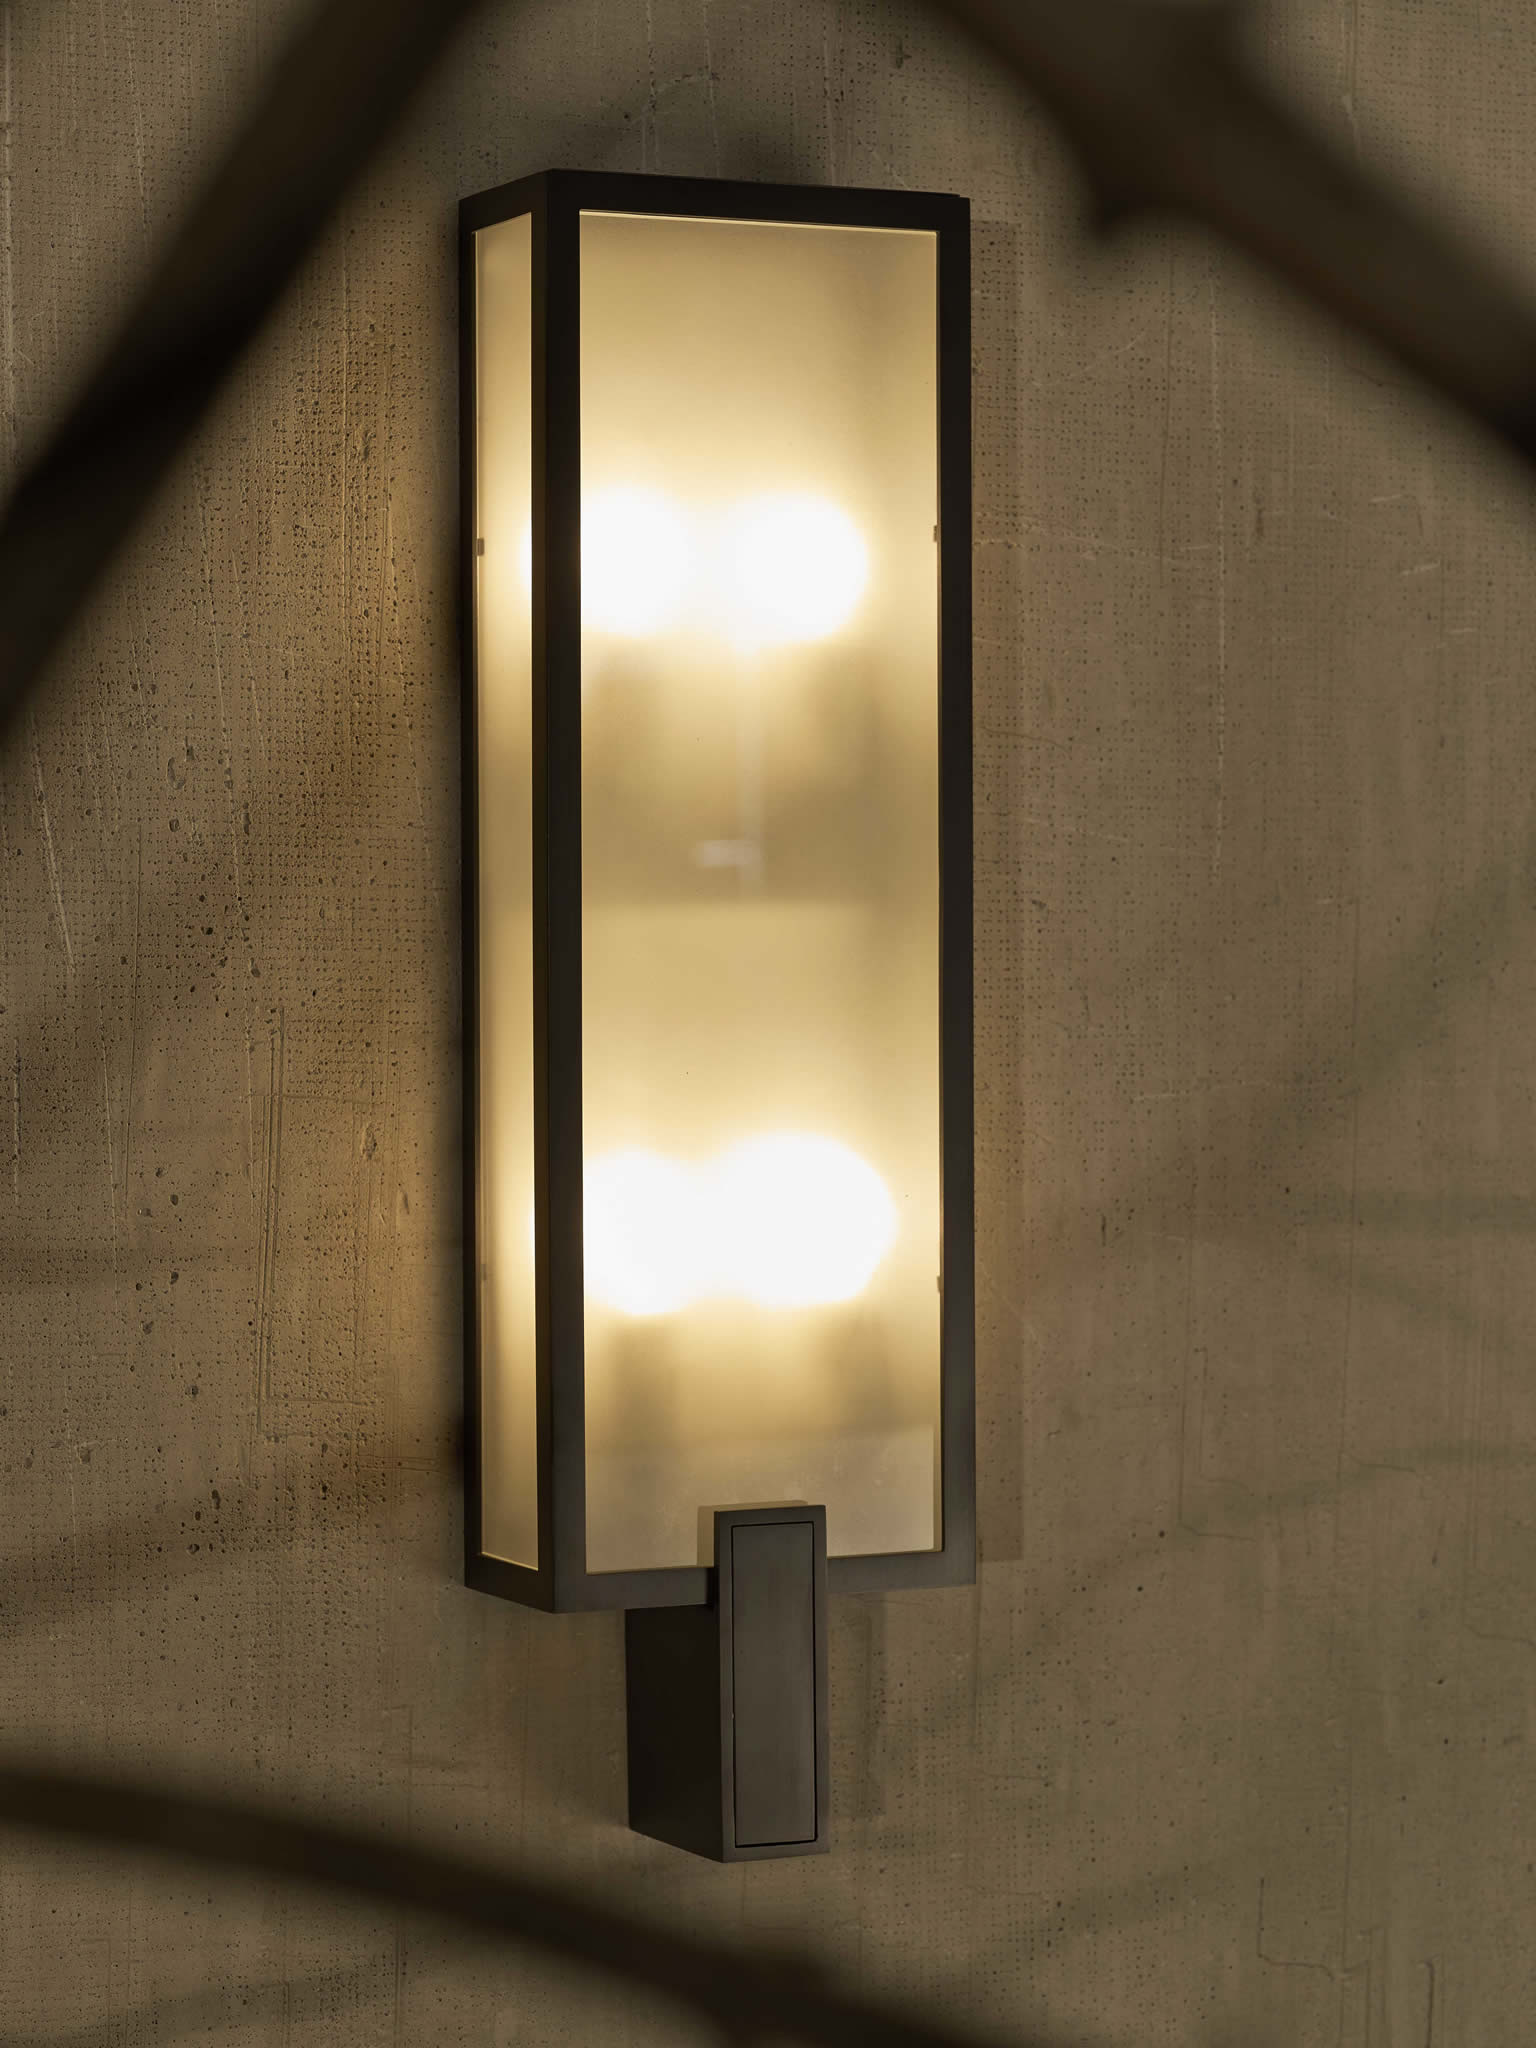 CL Sterling & Son | Exterior Tall Wall Sconce